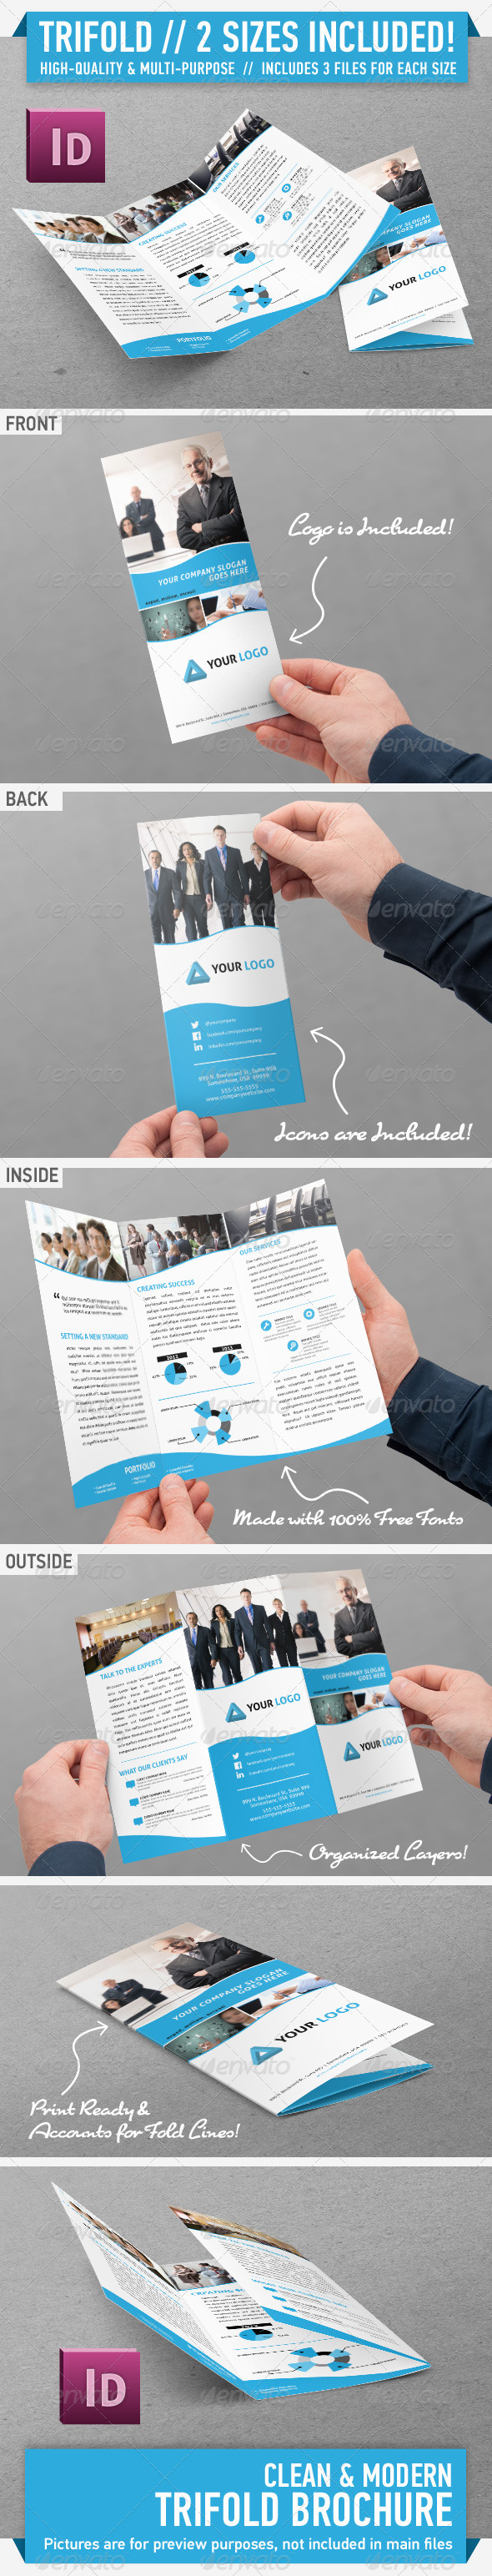 GraphicRiver Clean Modern Trifold Brochure Vol 1 3192286